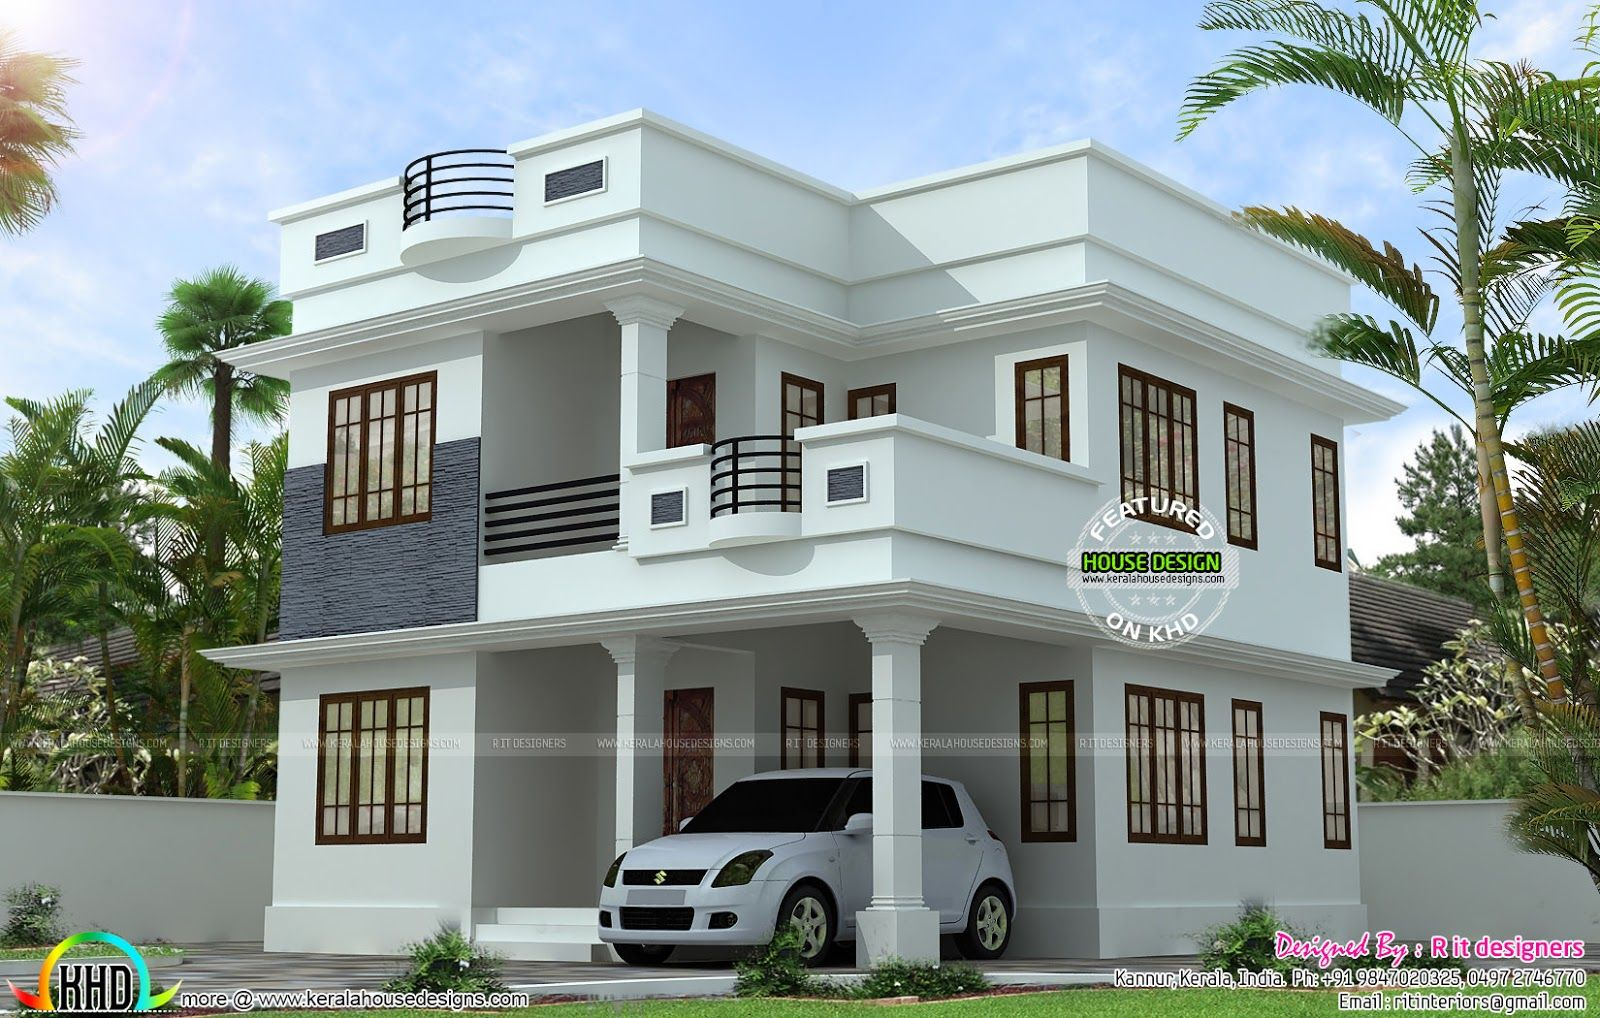 Neat and simple small house plan kerala home design floor plans also rh za pinterest